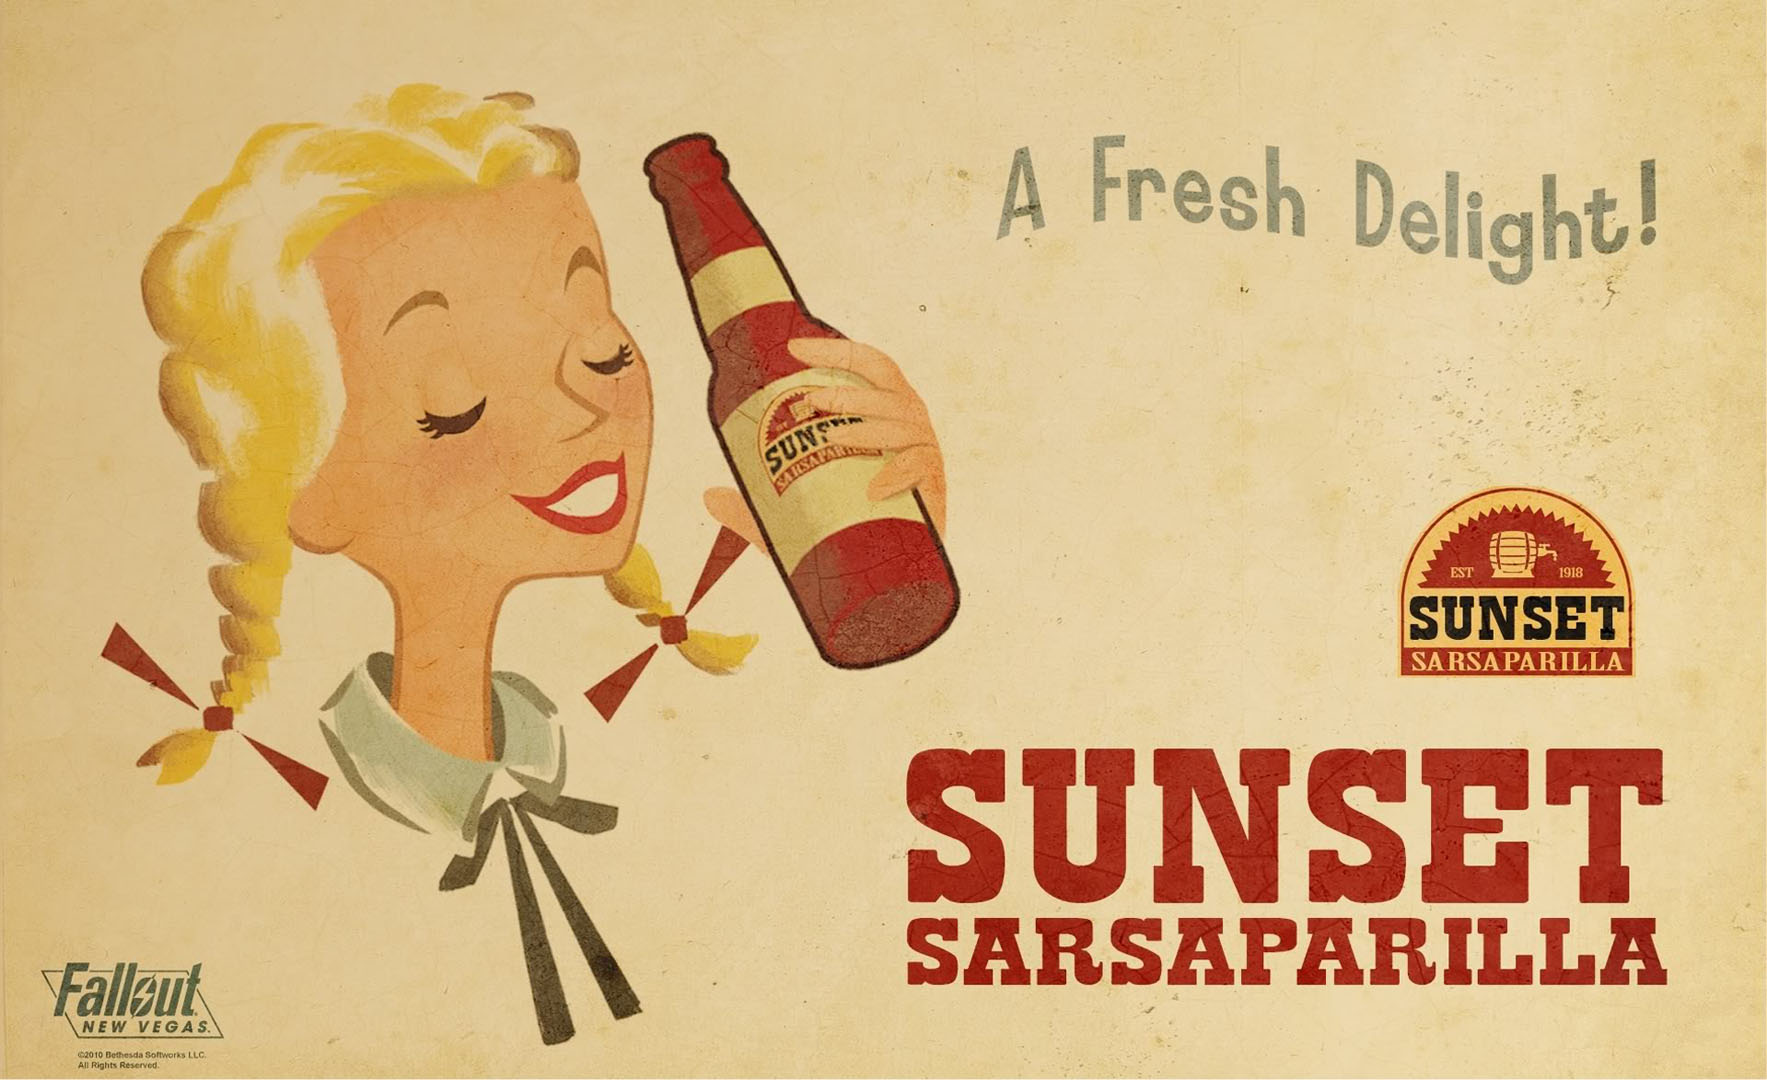 Sunset Sarsaparilla A Fresh Delight